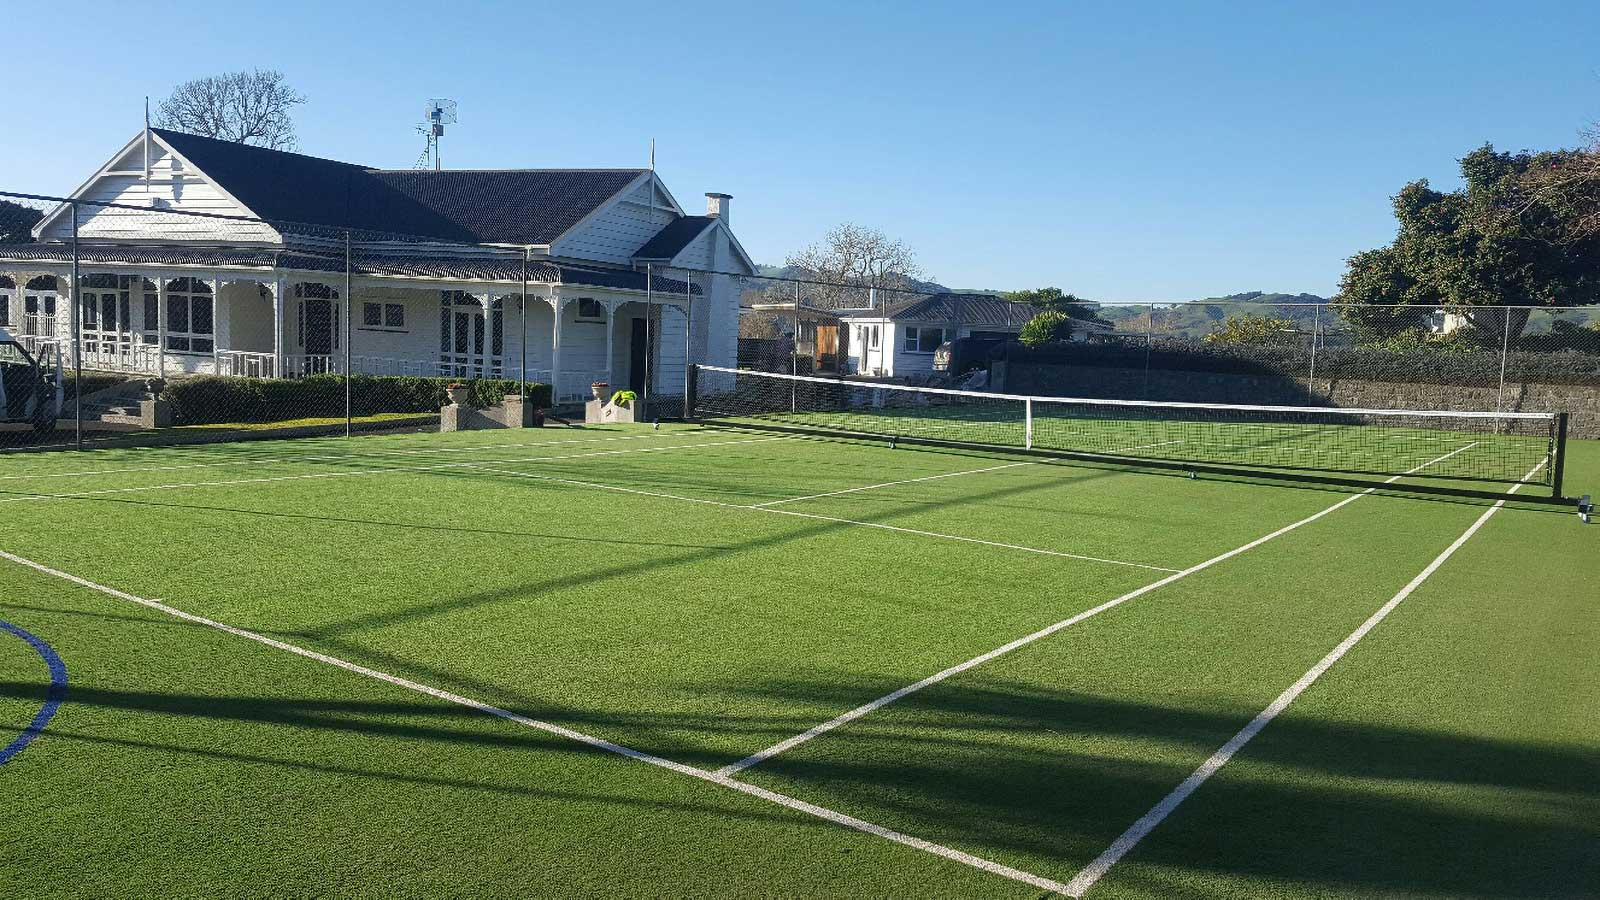 Cambridge Private Tennis Court synthetic turf